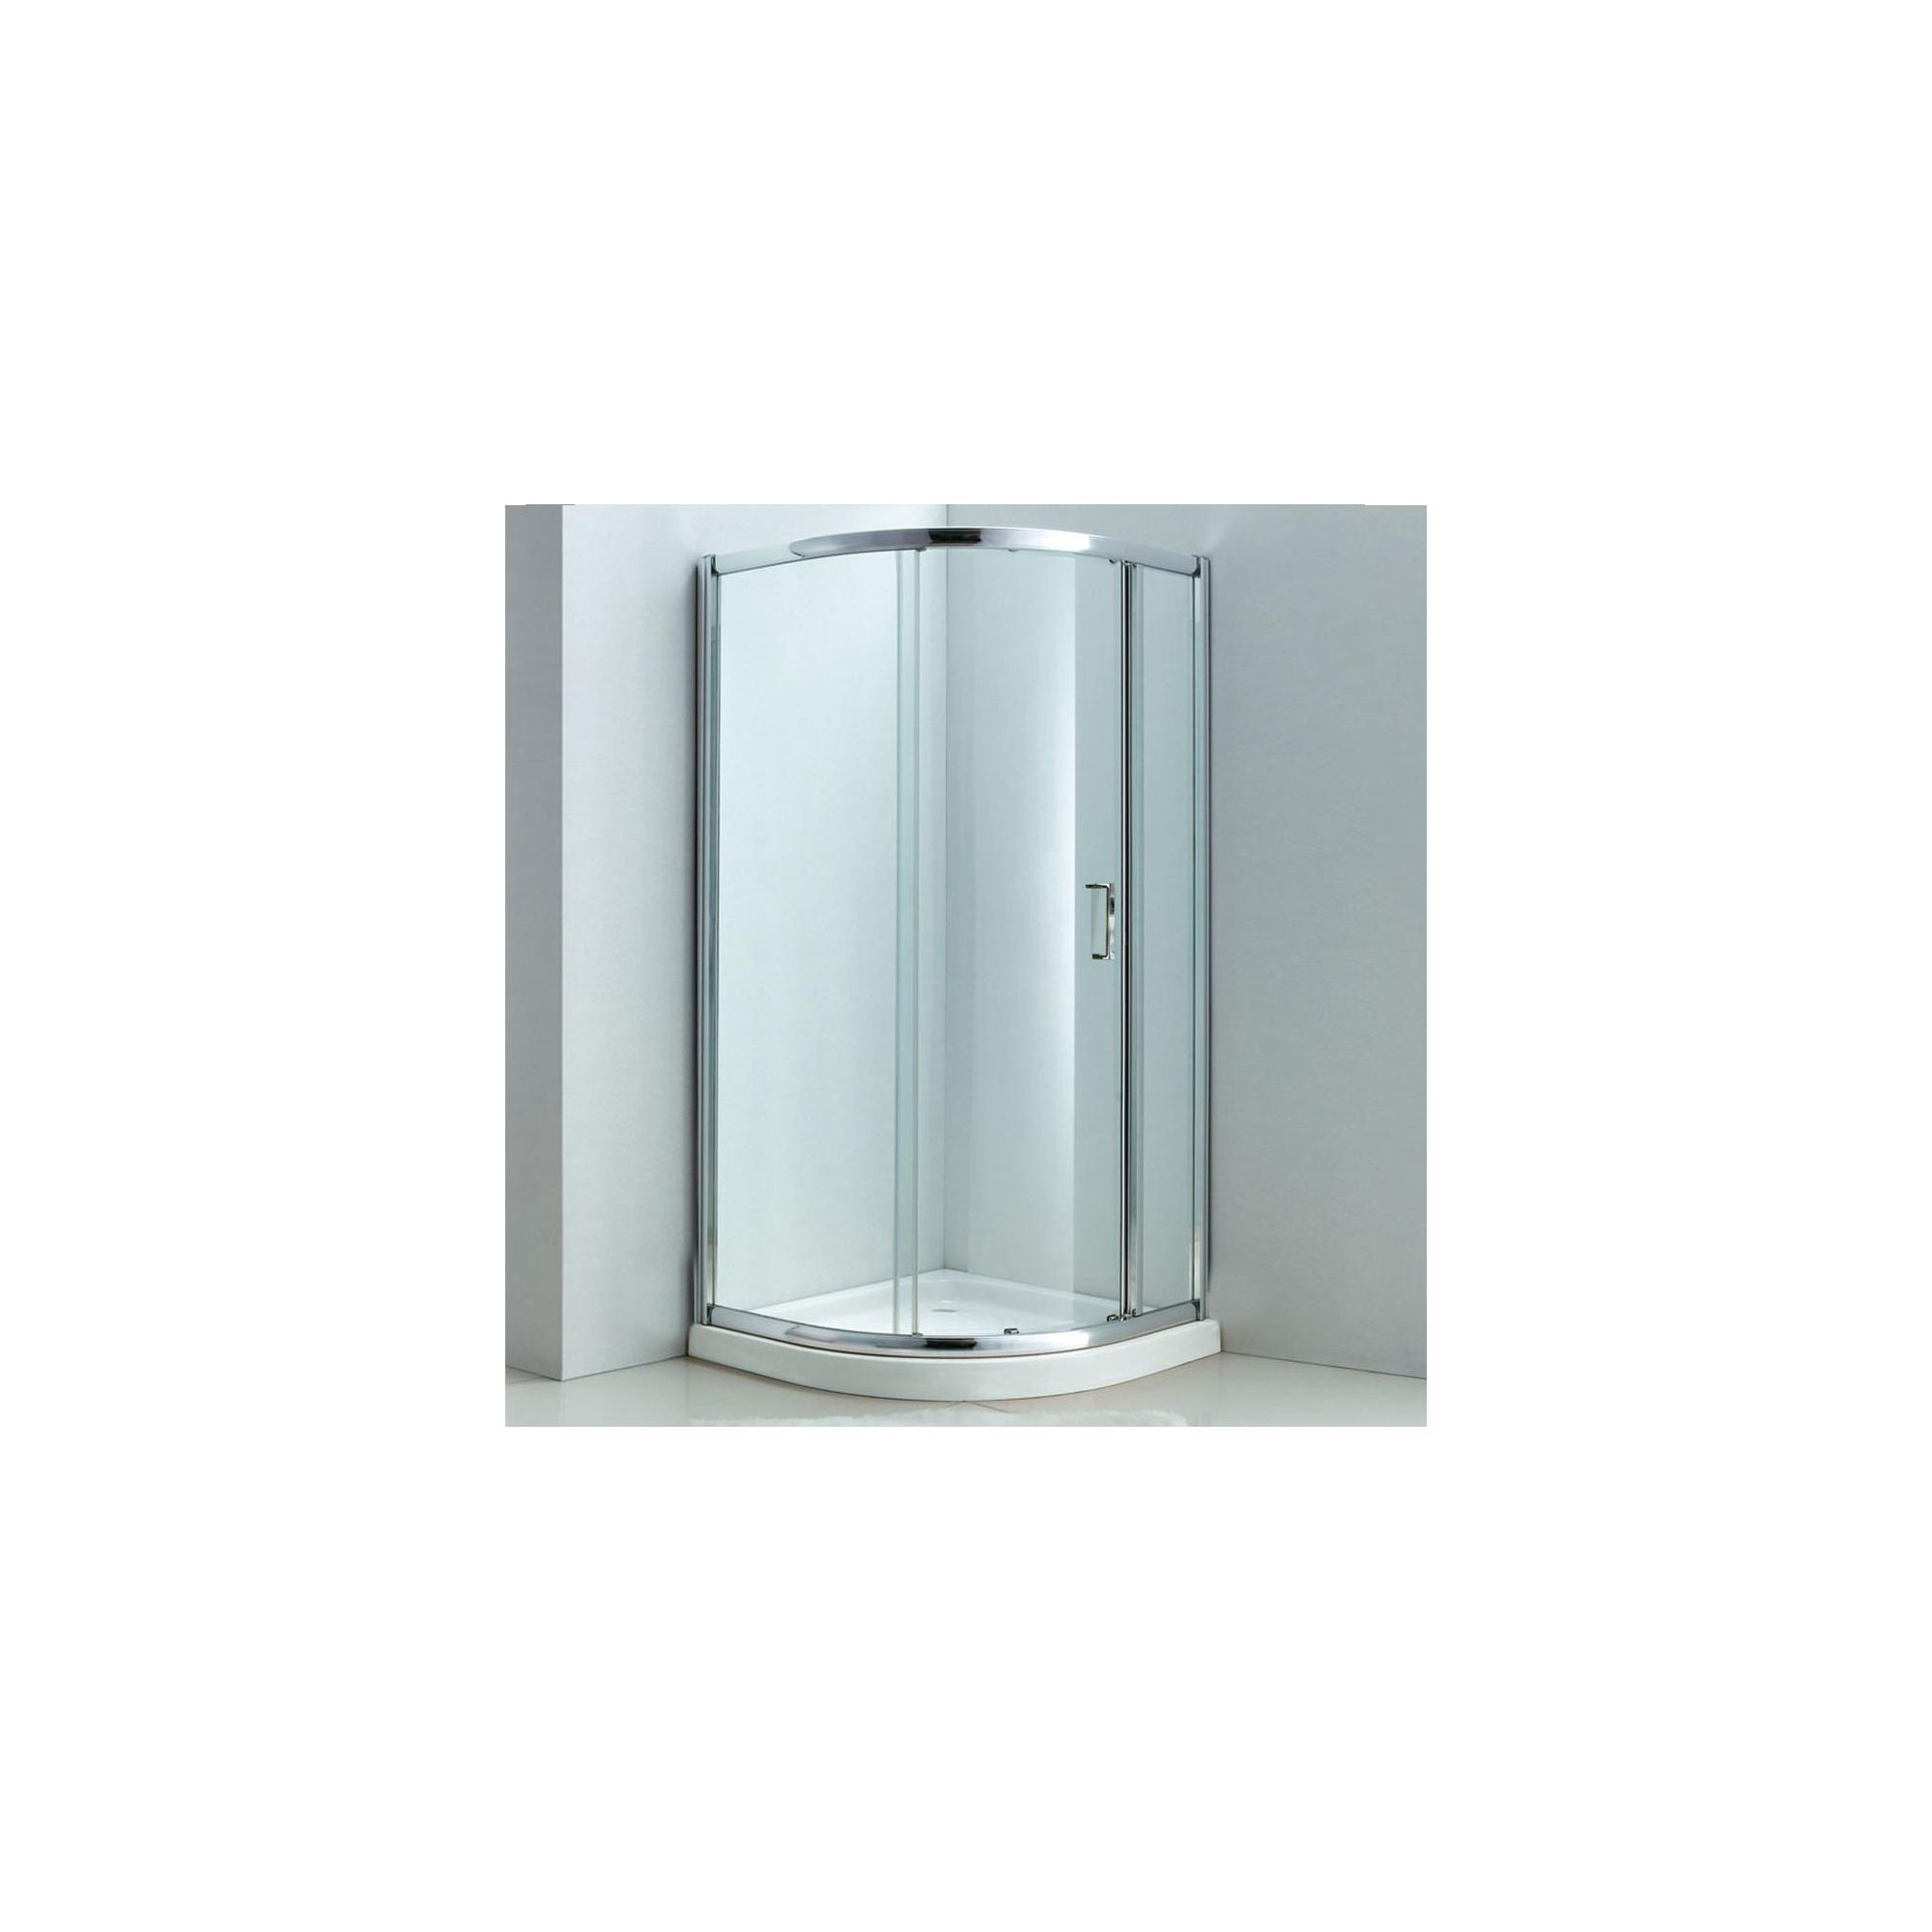 Duchy Style Single Offset Quadrant Shower Door, 1200mm x 900mm, 6mm Glass at Tesco Direct